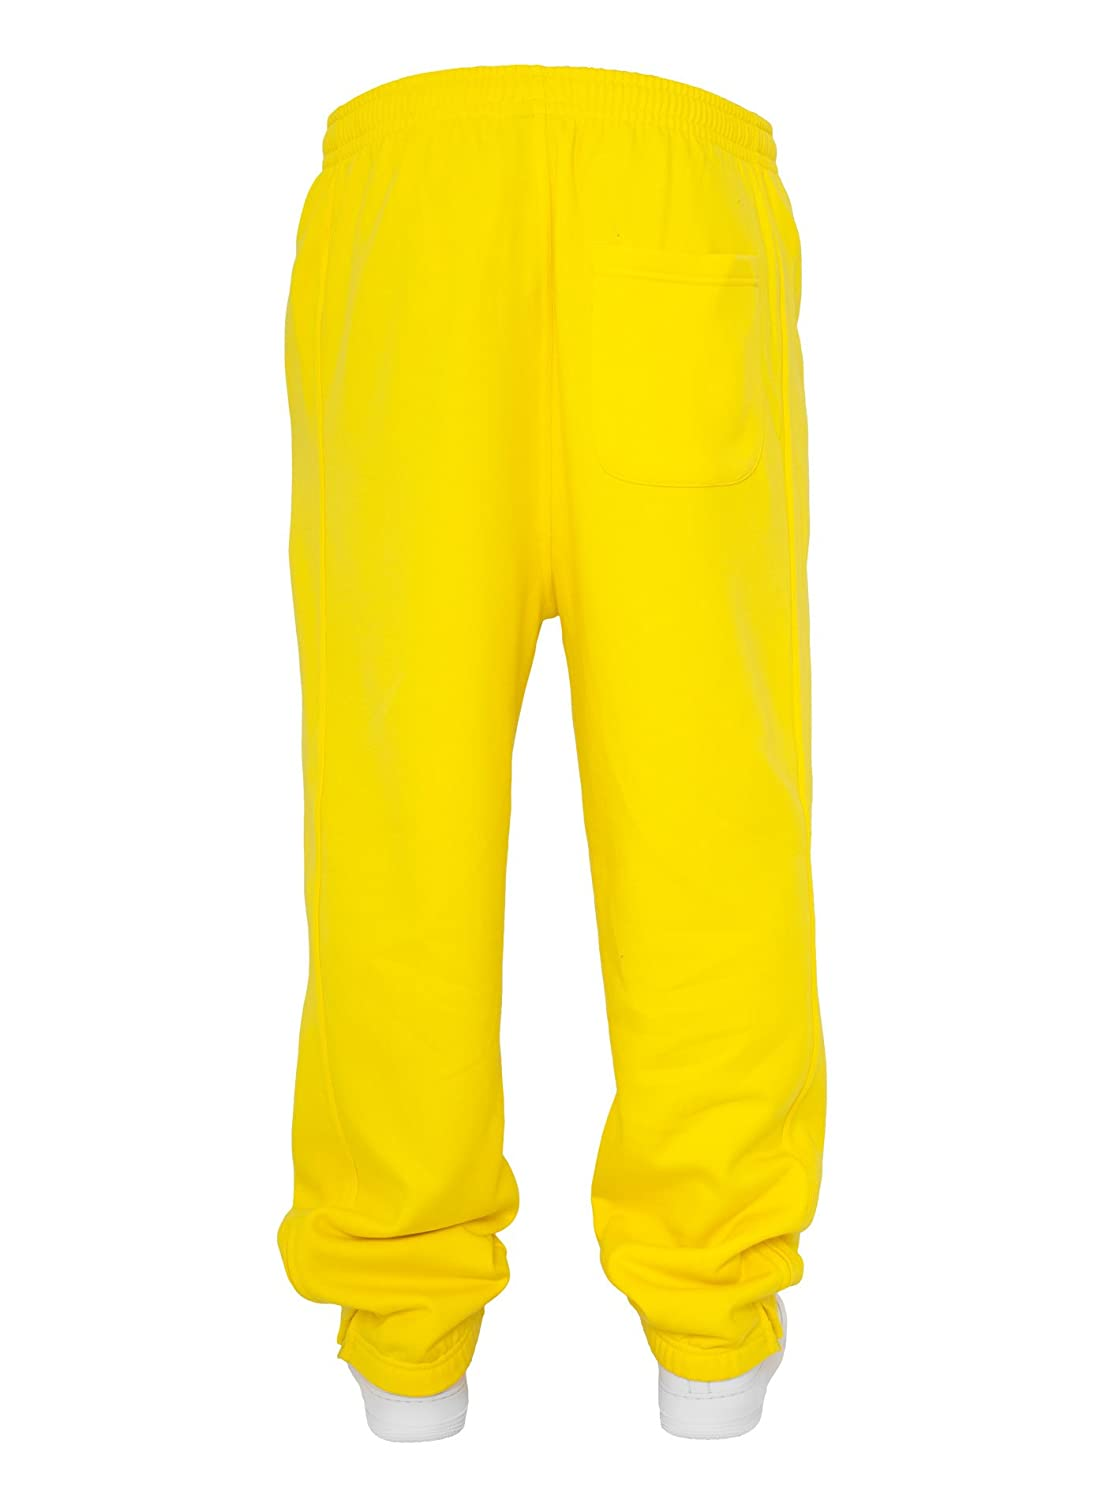 Urban Classics Men's Trousers - Yellow - Yellow - Small